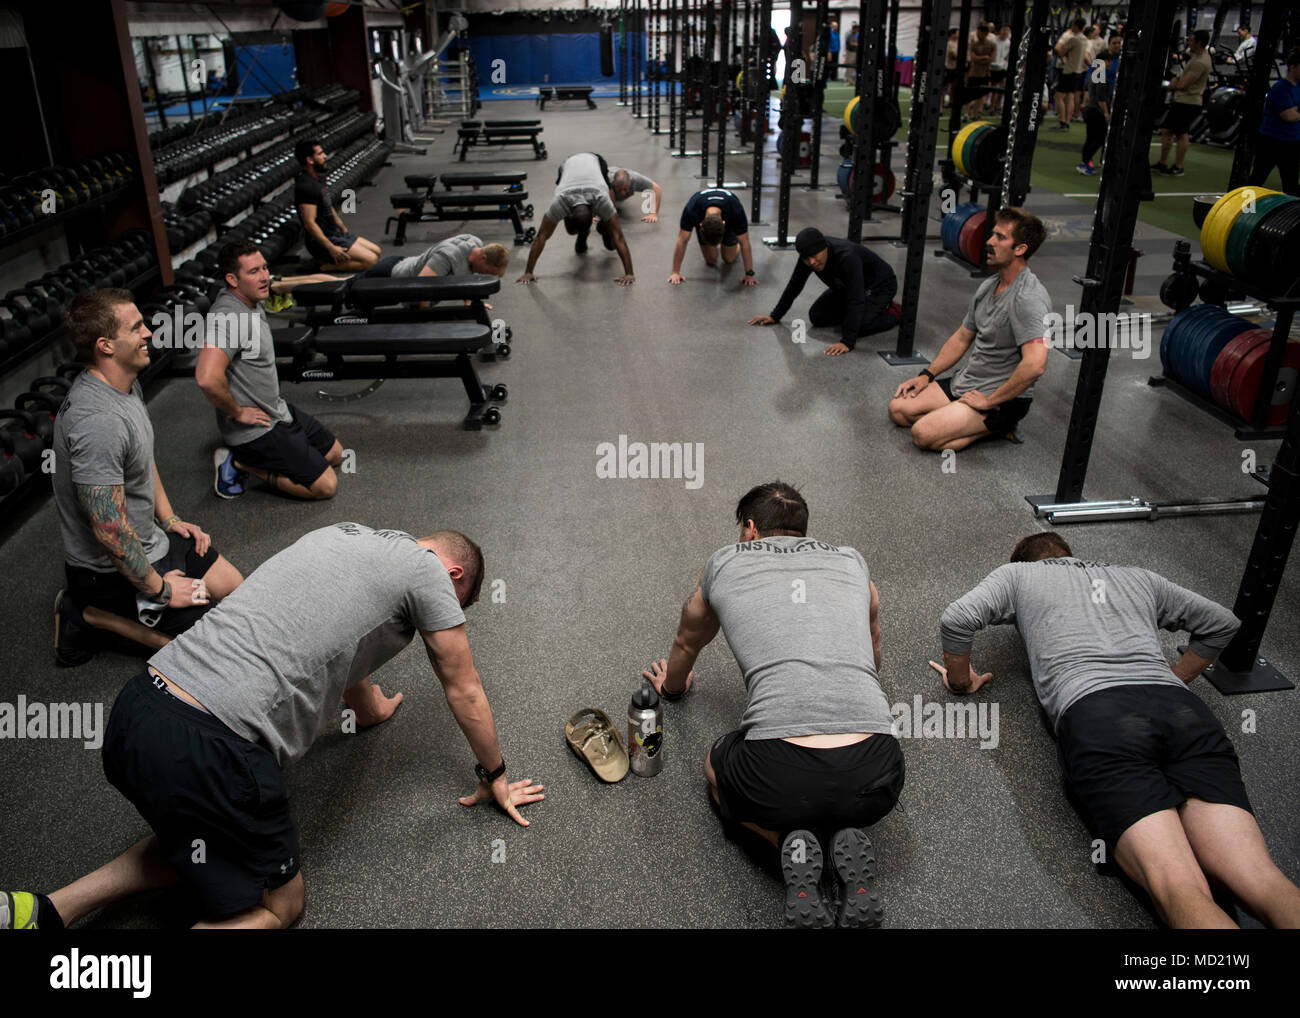 Participants in the Maltz Challenge perform pushups at